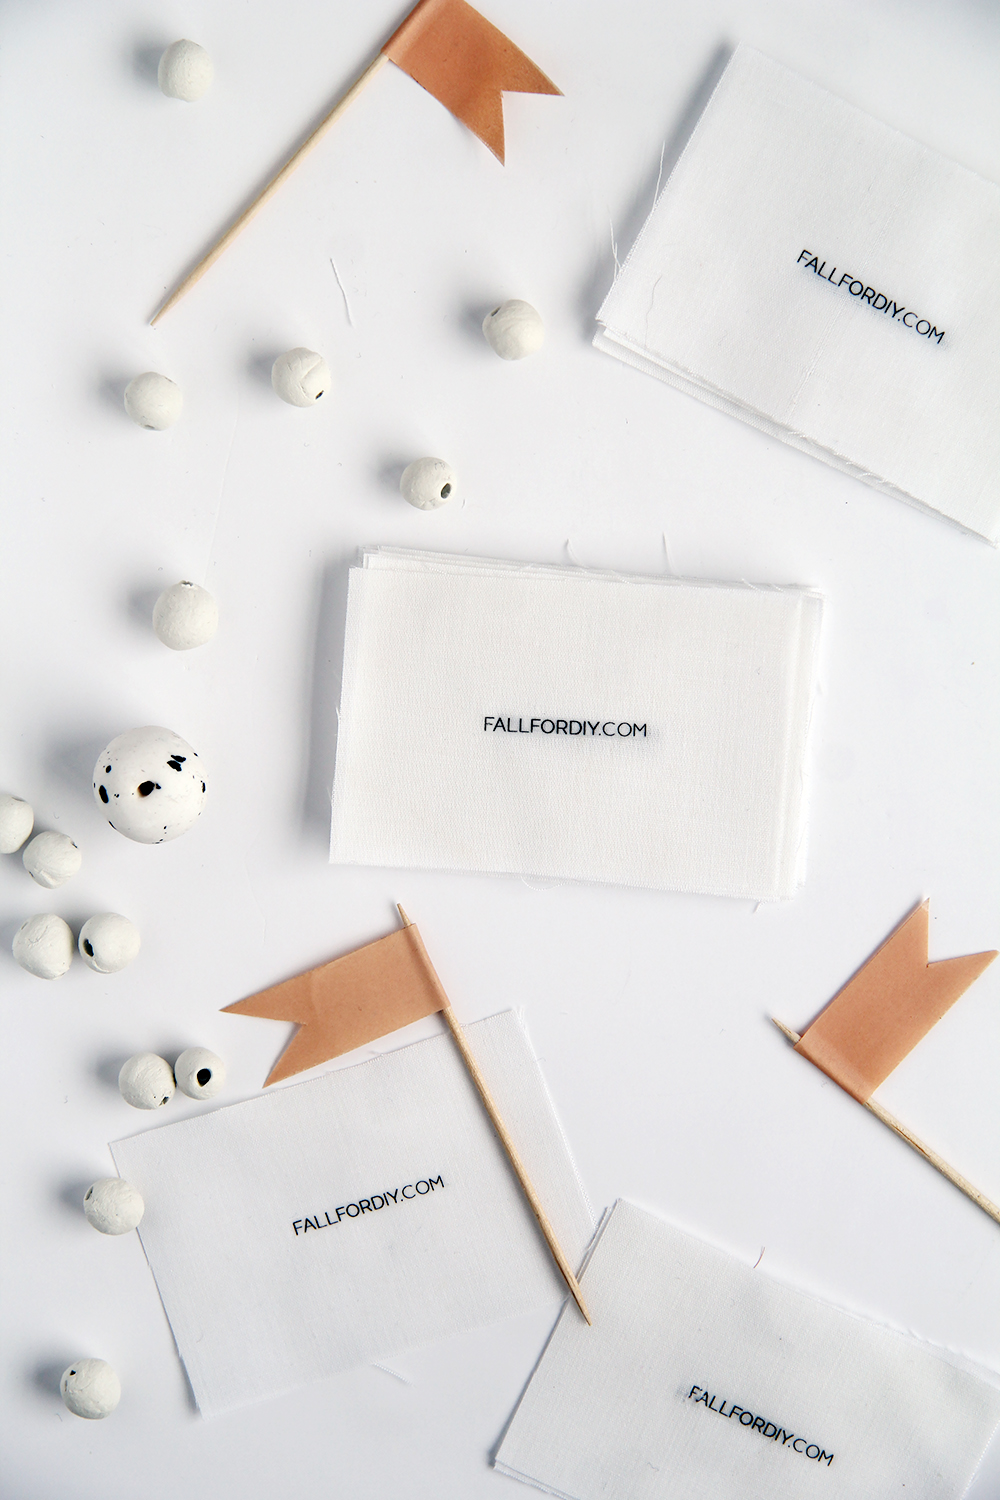 How to Make Fabric Business Cards | Fall For DIY